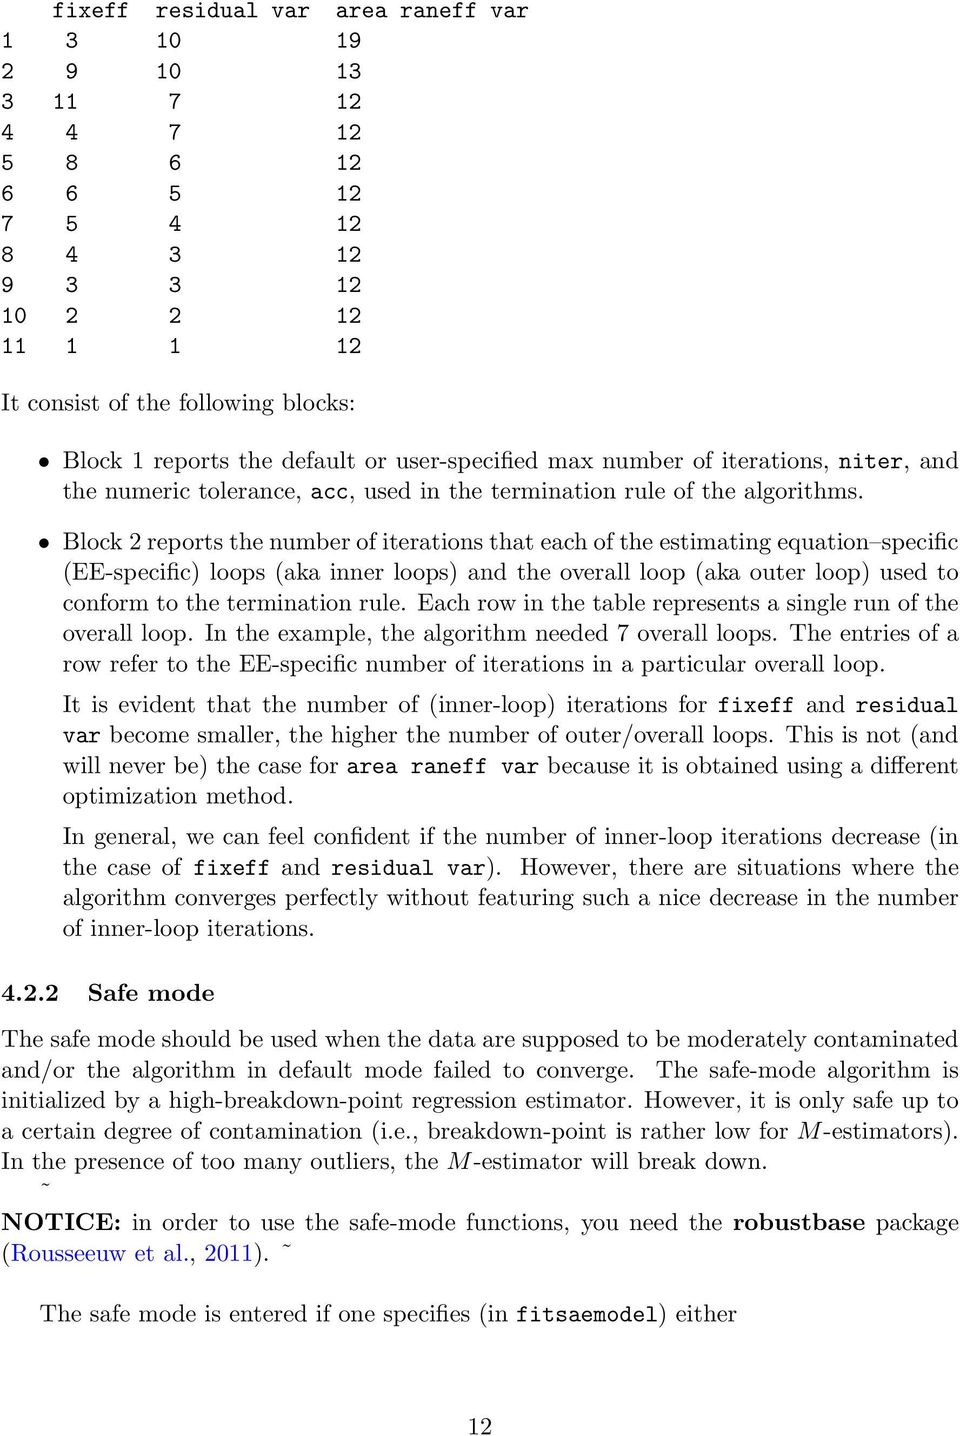 Block 2 reports the number of iterations that each of the estimating equation specific (EE-specific) loops (aka inner loops) and the overall loop (aka outer loop) used to conform to the termination